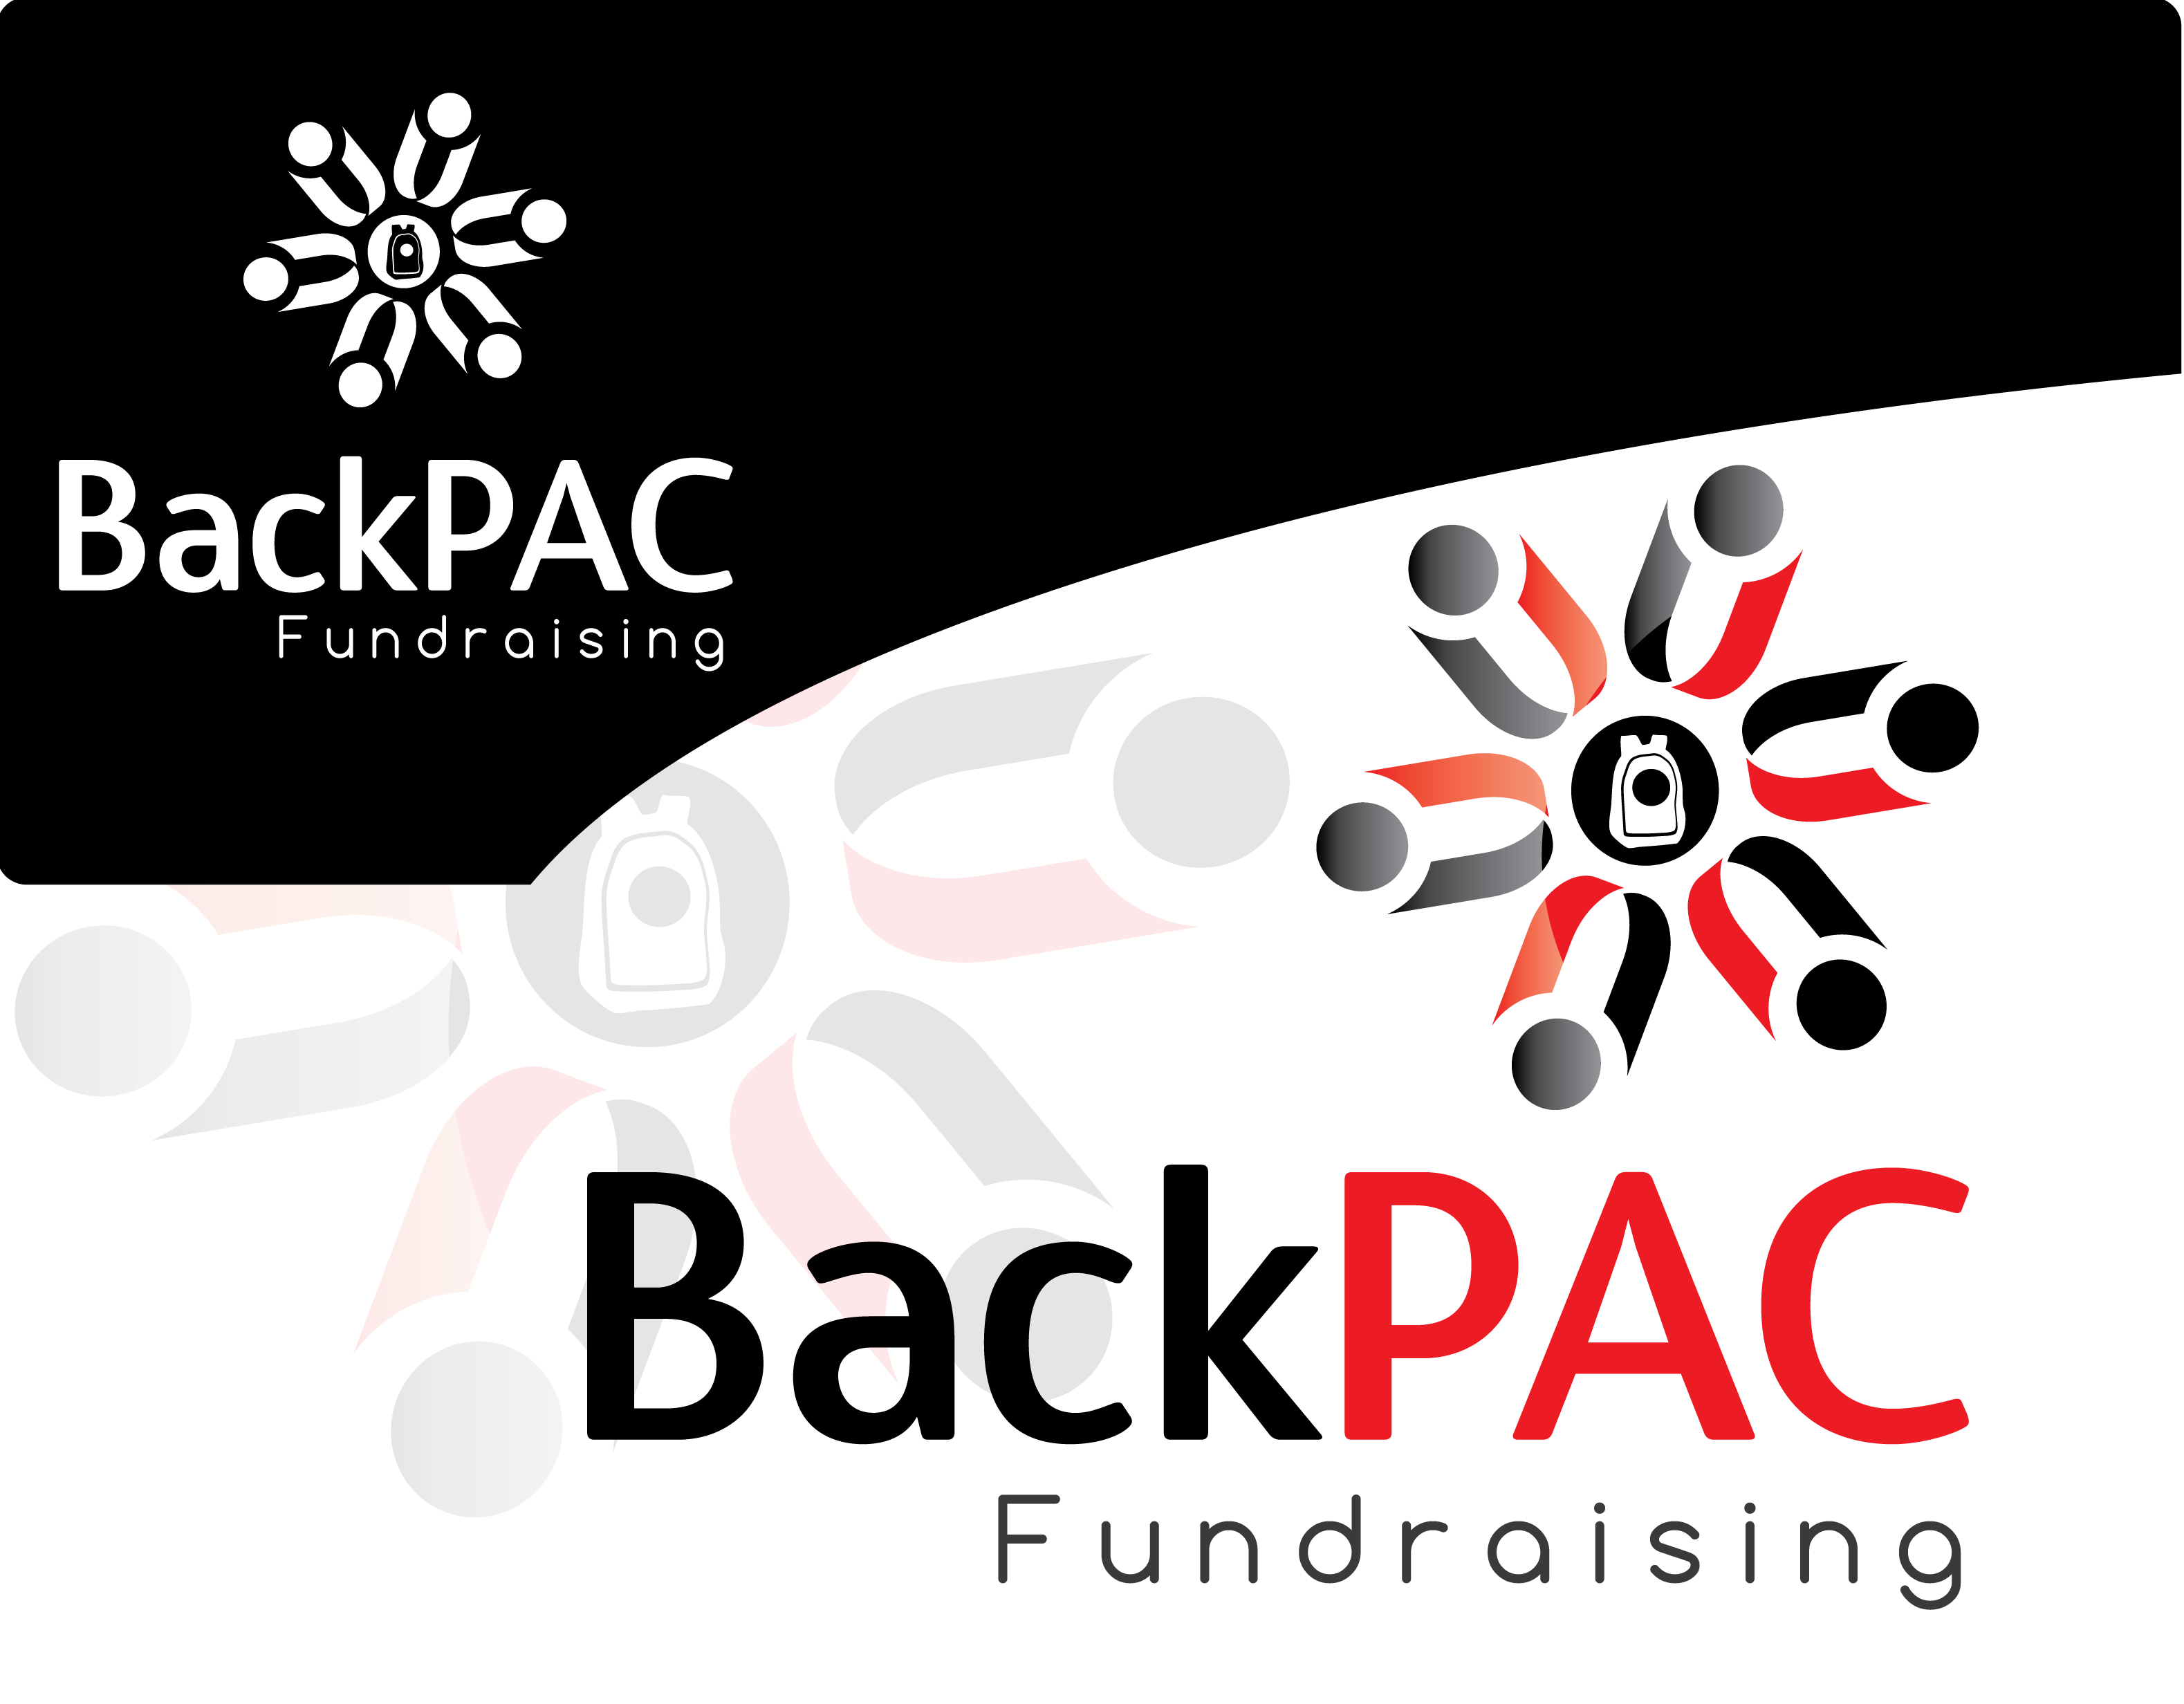 Logo Design by 354studio - Entry No. 78 in the Logo Design Contest Imaginative Logo Design for BackPAC Fundraising.